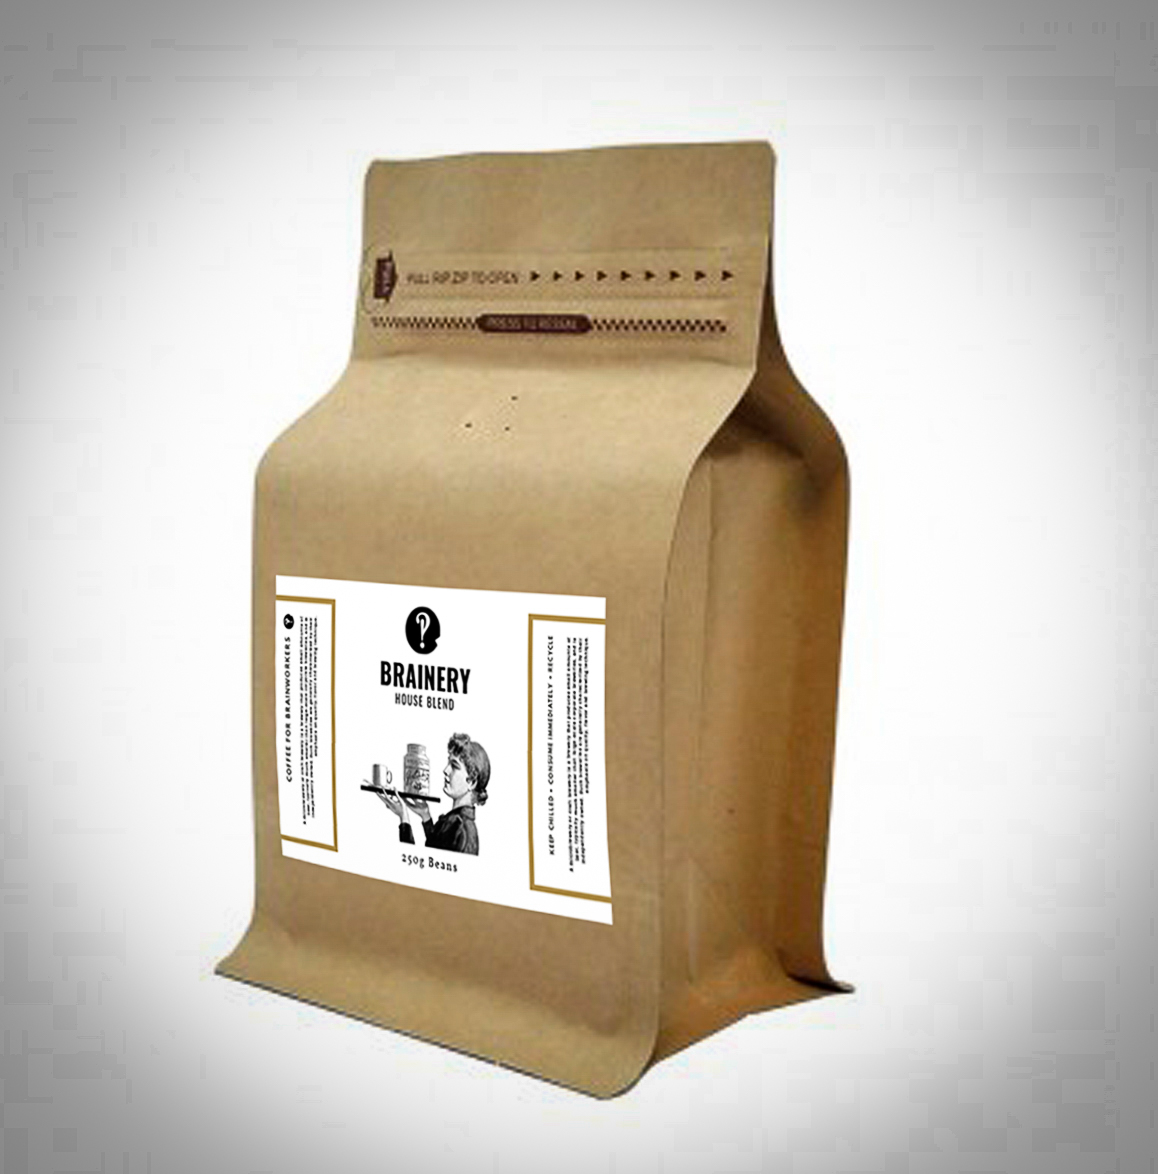 Brainery House Blend Coffee